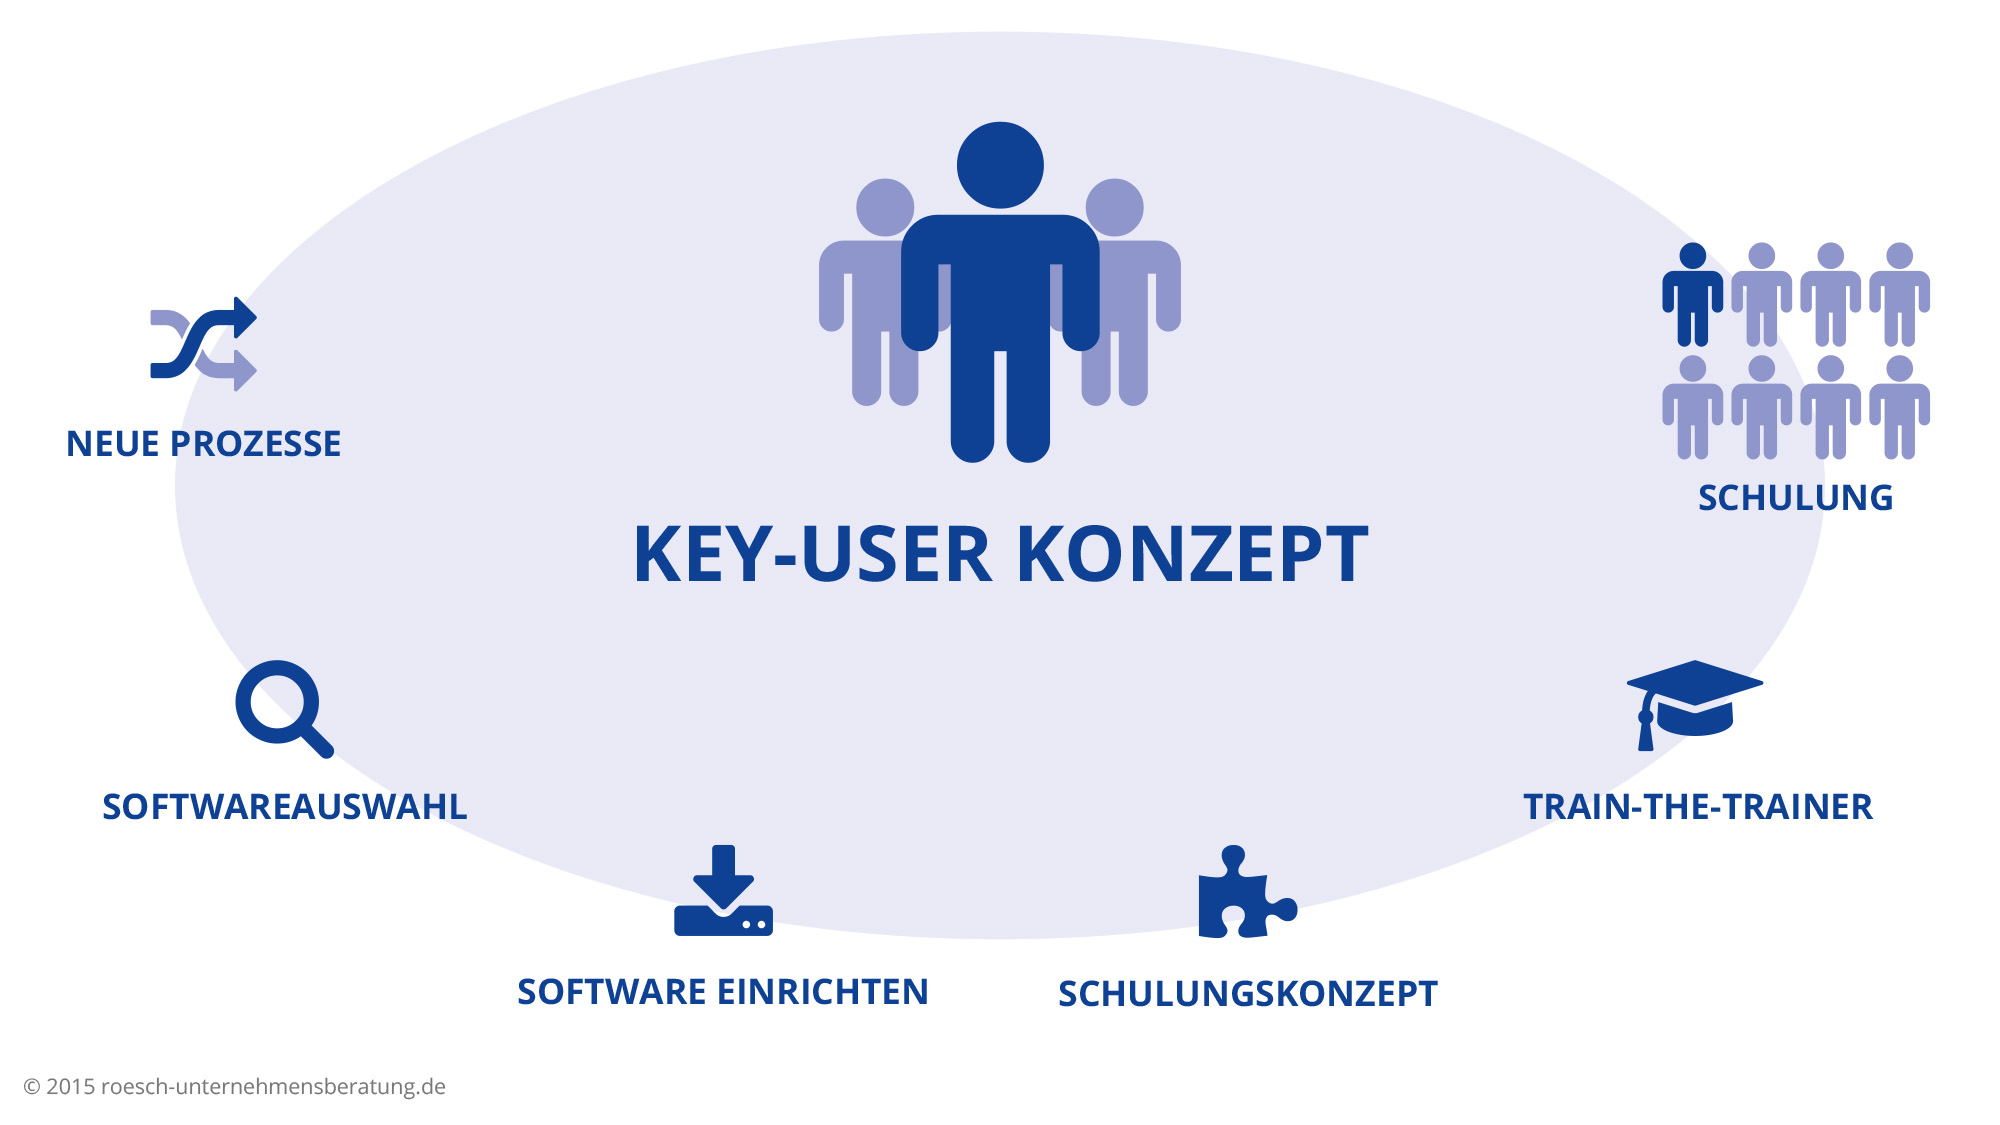 Peter Roesch - Key-User-Konzept